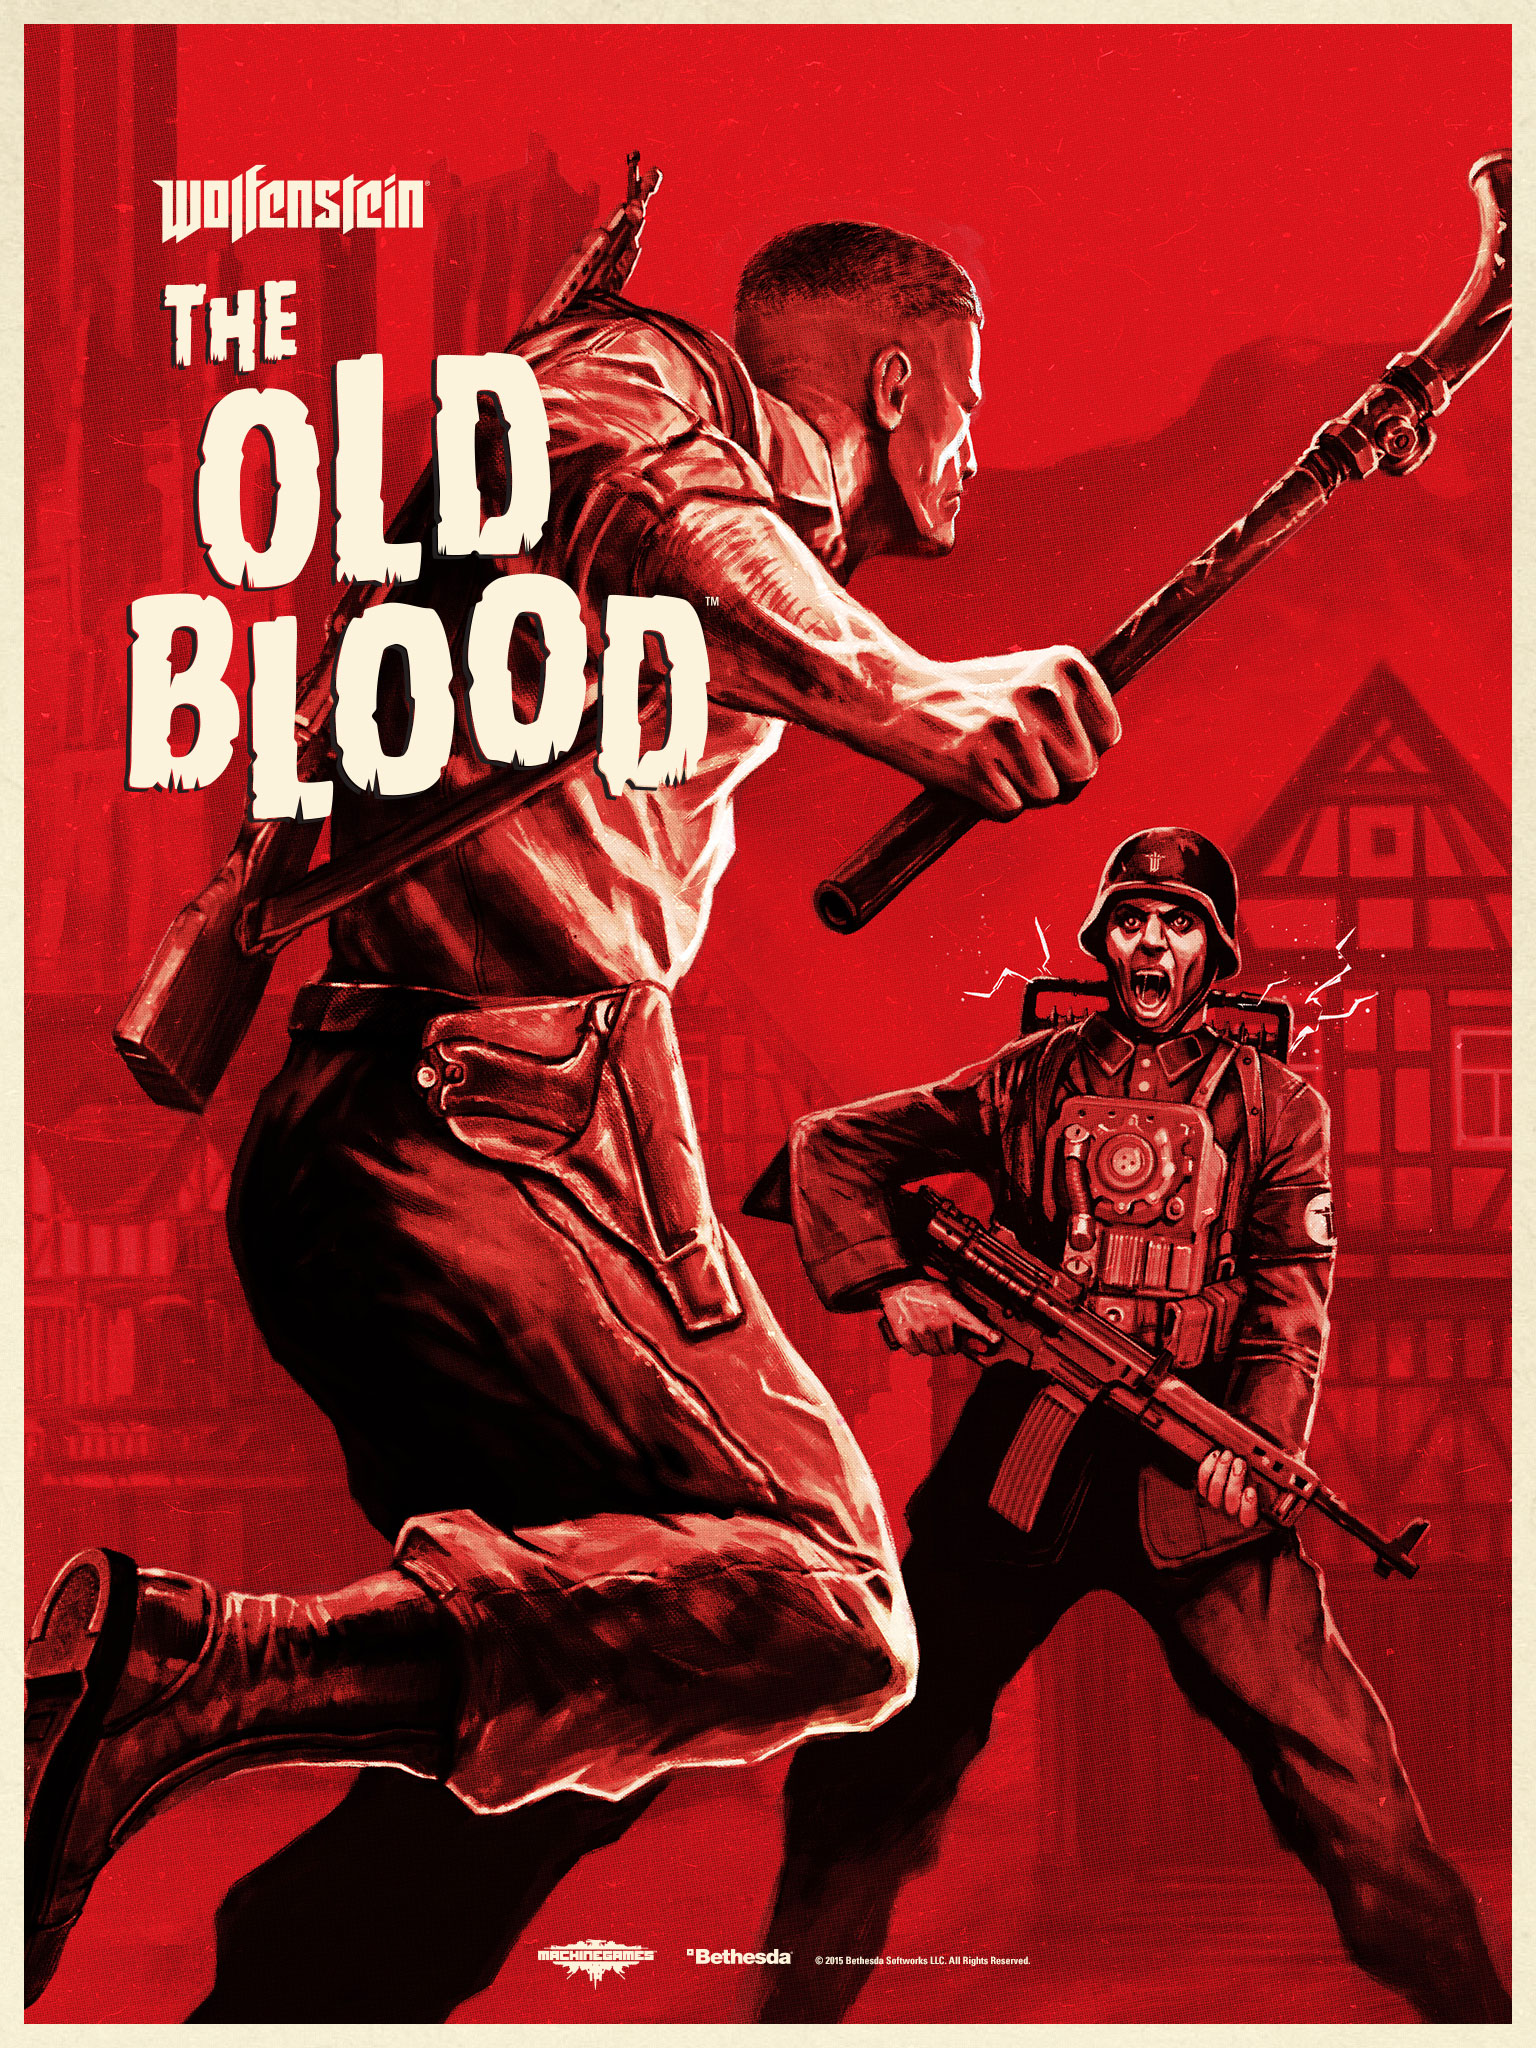 Wolfenstein The Old Blood 2015 Promotional Art Mobygames